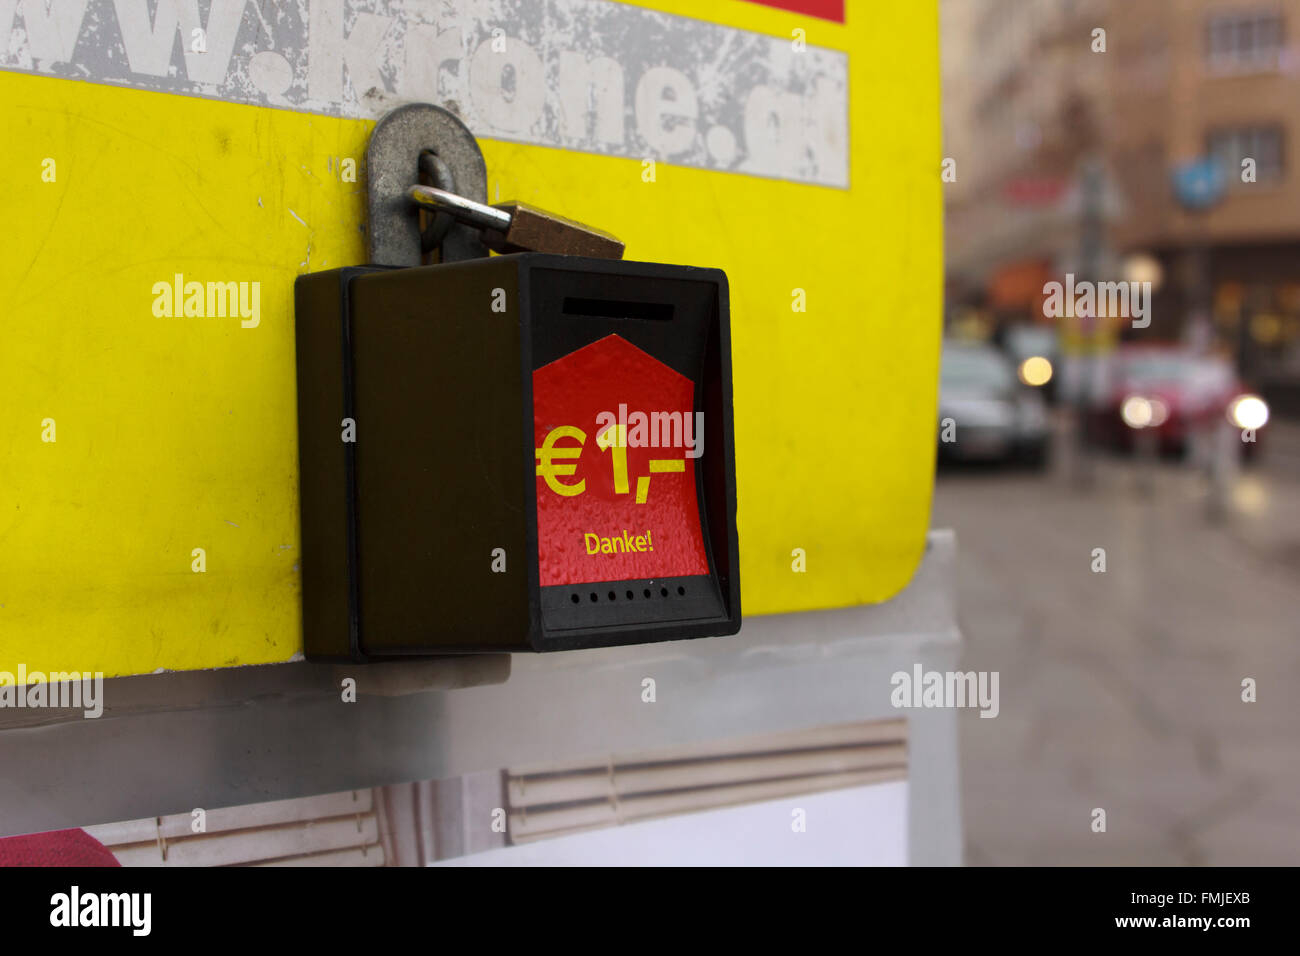 Symbol of Euro currency on a locked contribution box of newspaper selling stand in Vienna, Austria. - Stock Image